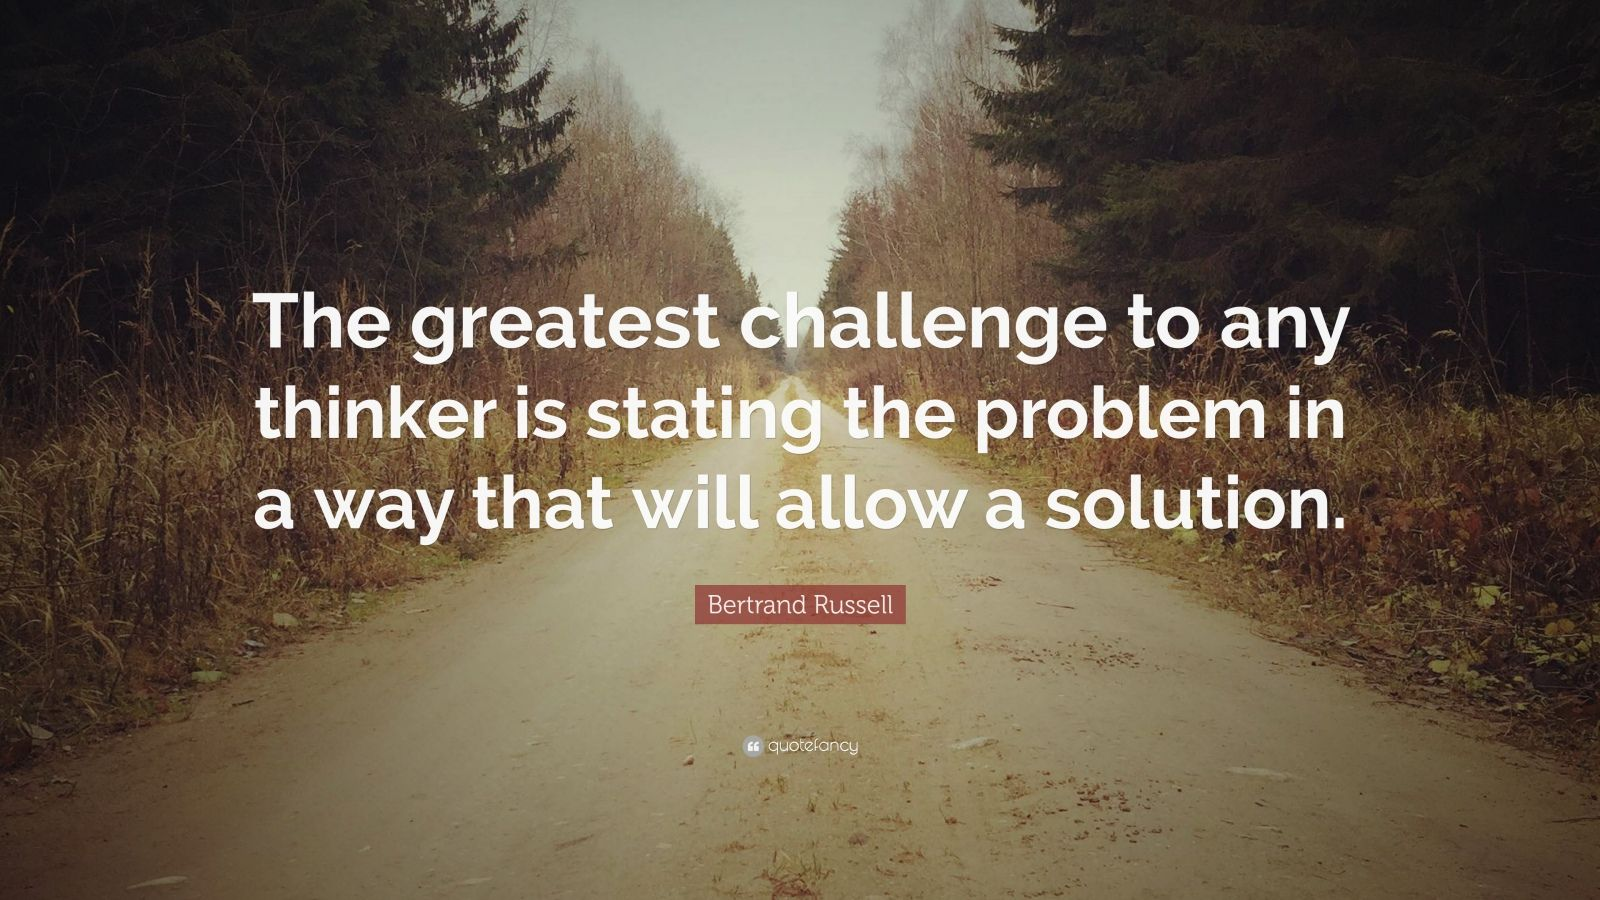 """Bertrand Russell Quote: """"The greatest challenge to any thinker is stating the problem in a way that will allow a solution."""""""